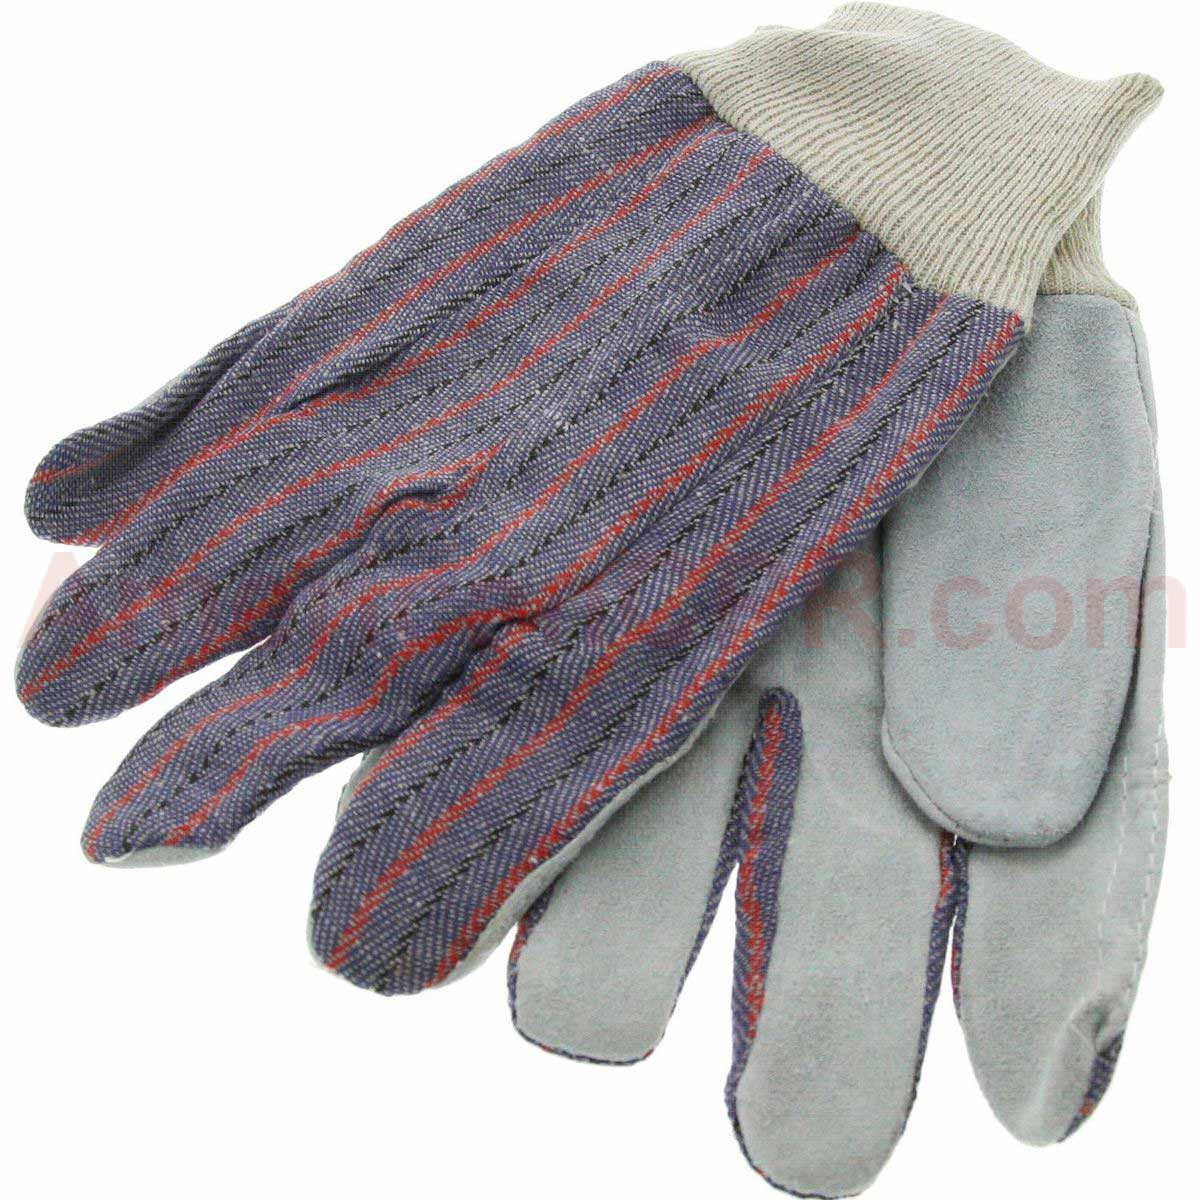 Work Gloves Leather Palm - Value Brand